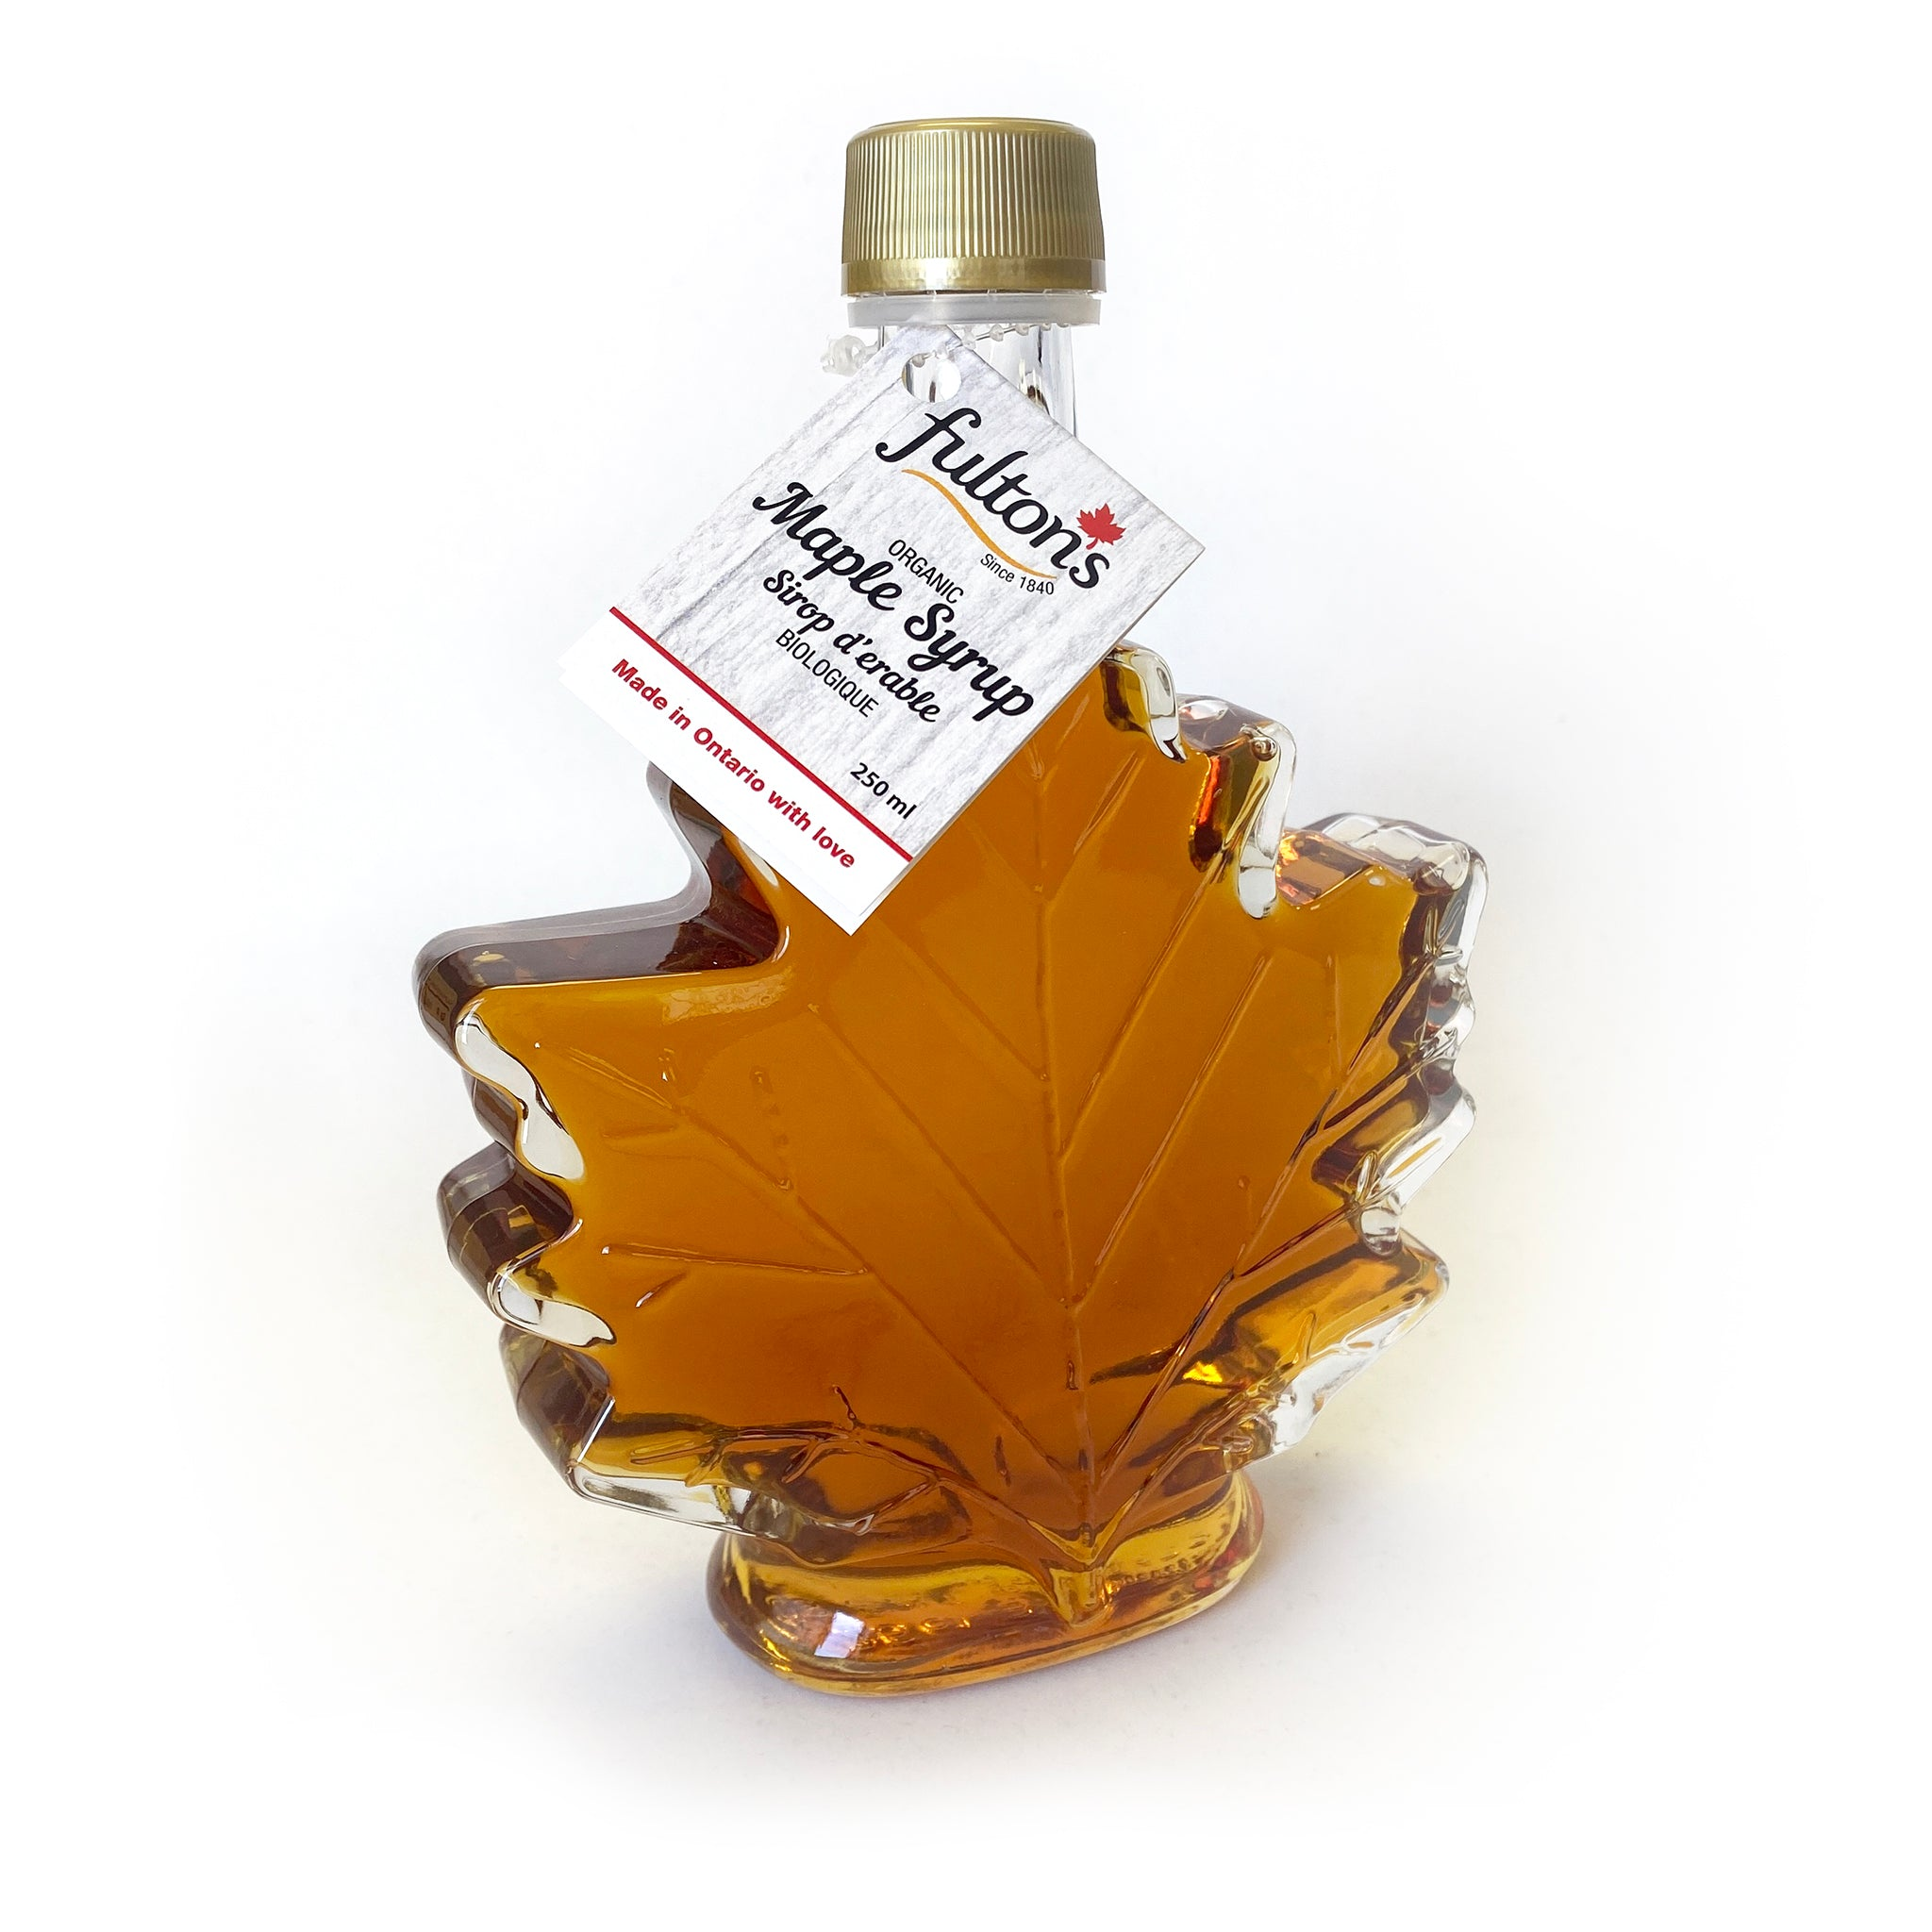 Bottle of Fulton's maple syrup shaped like a maple leaf.